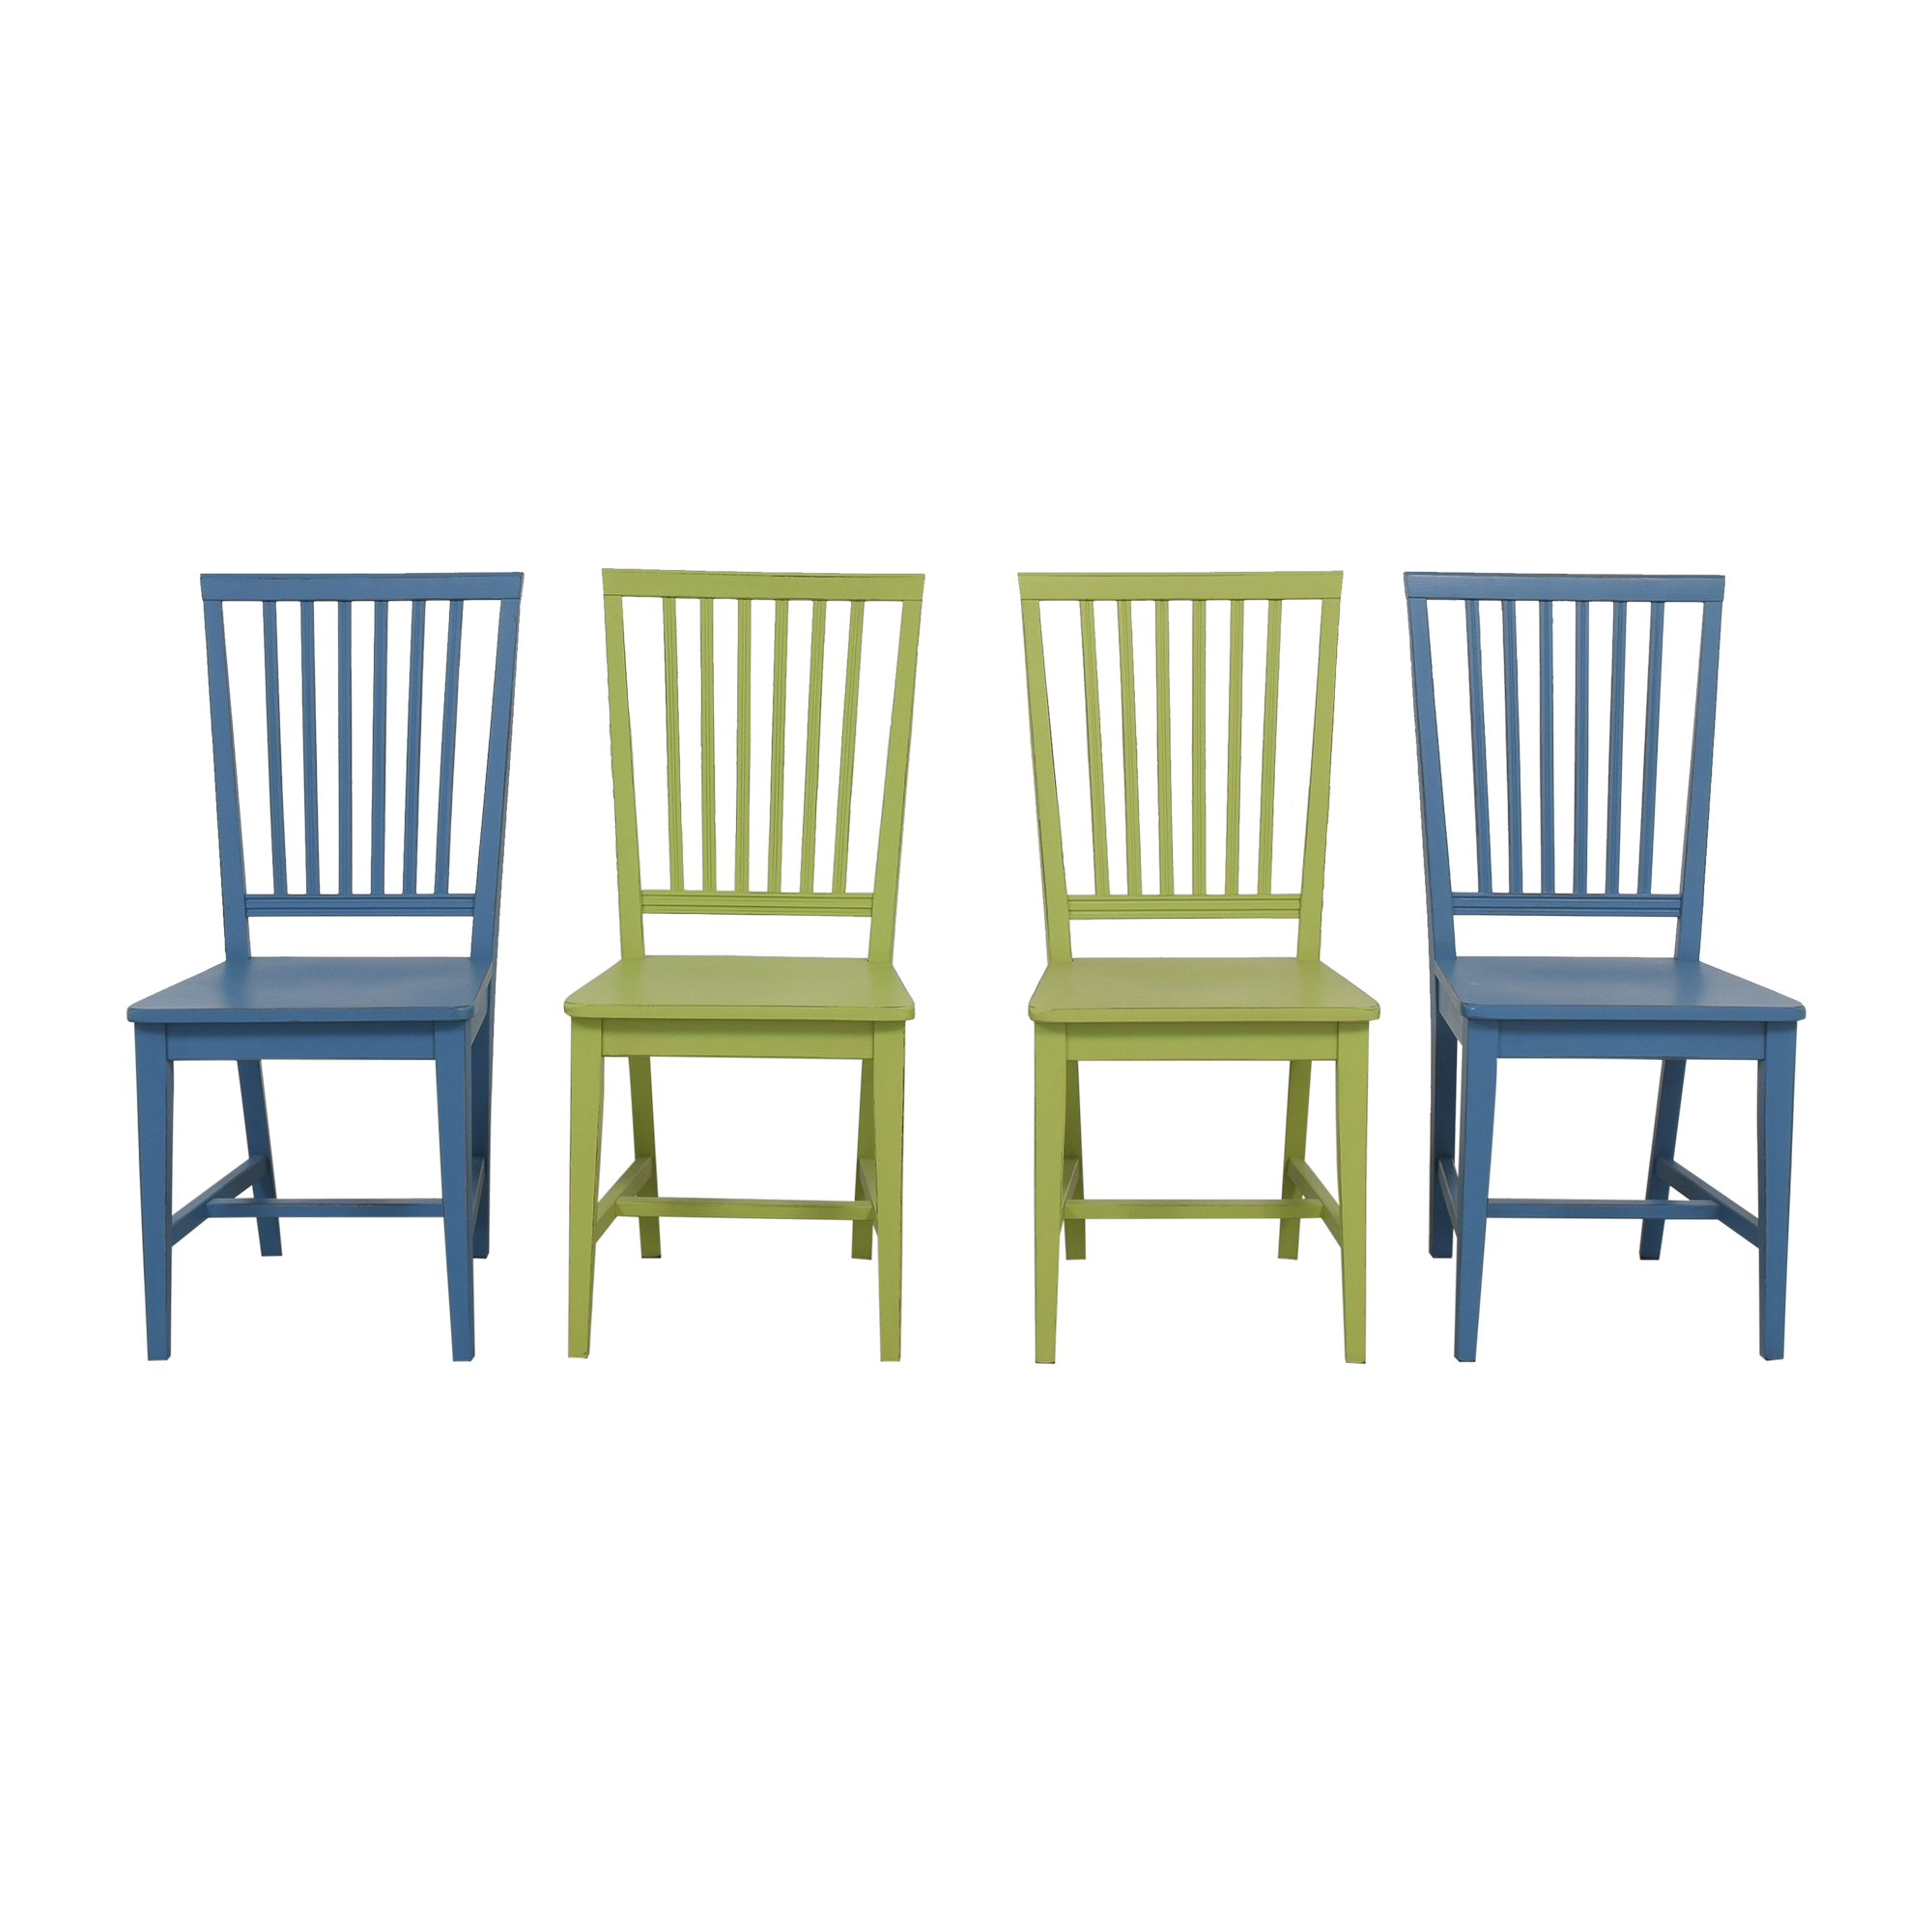 Crate & Barrel Crate & Barrel Village Dining Chairs blue & green